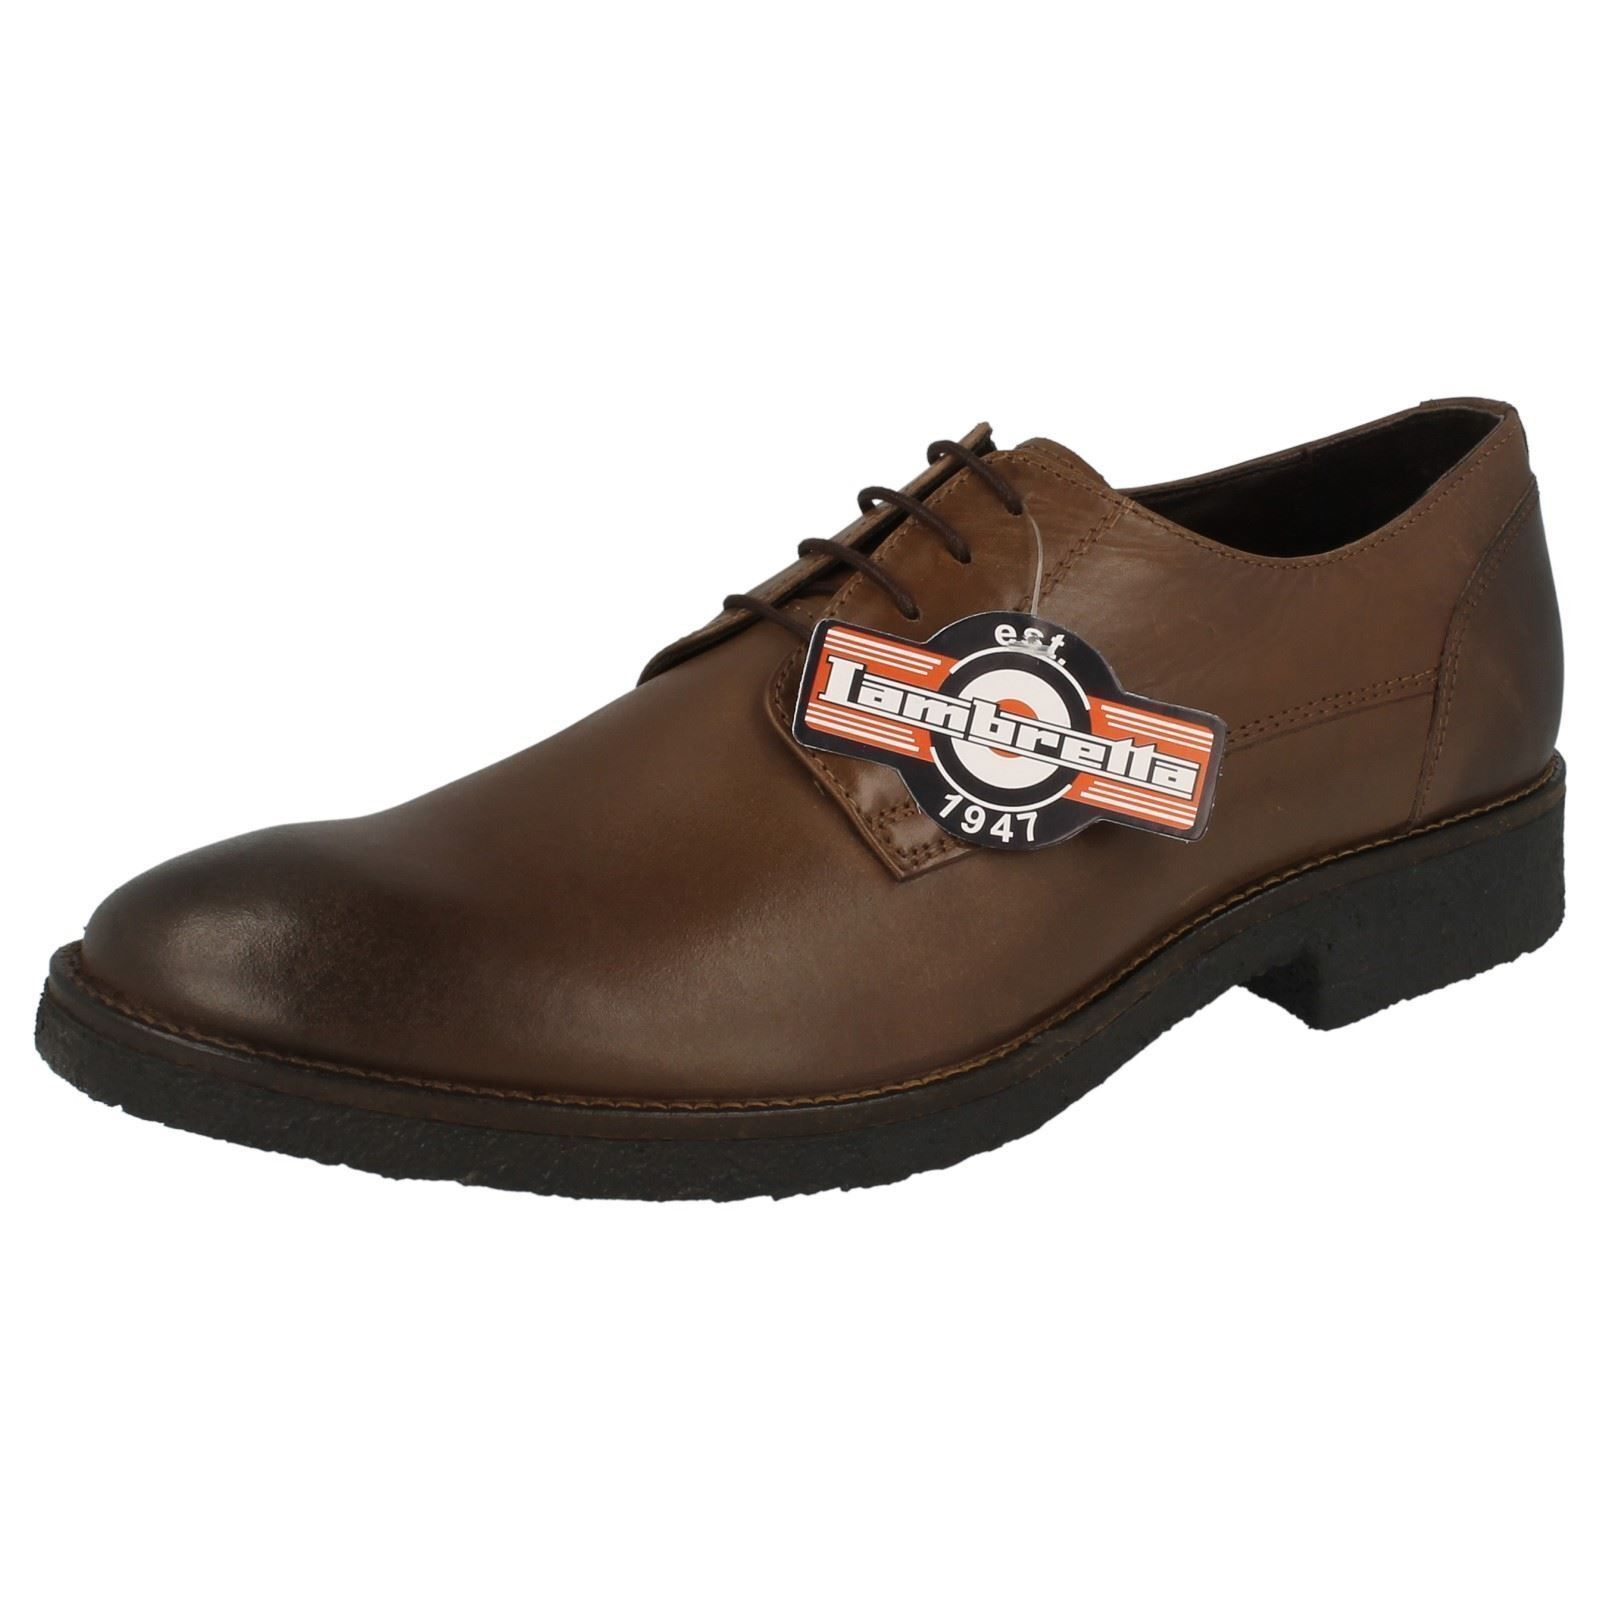 MENS LAMBRETTA LACE UP BROWN LEATHER ROUND TOE SMART FORMAL SHOES M-81